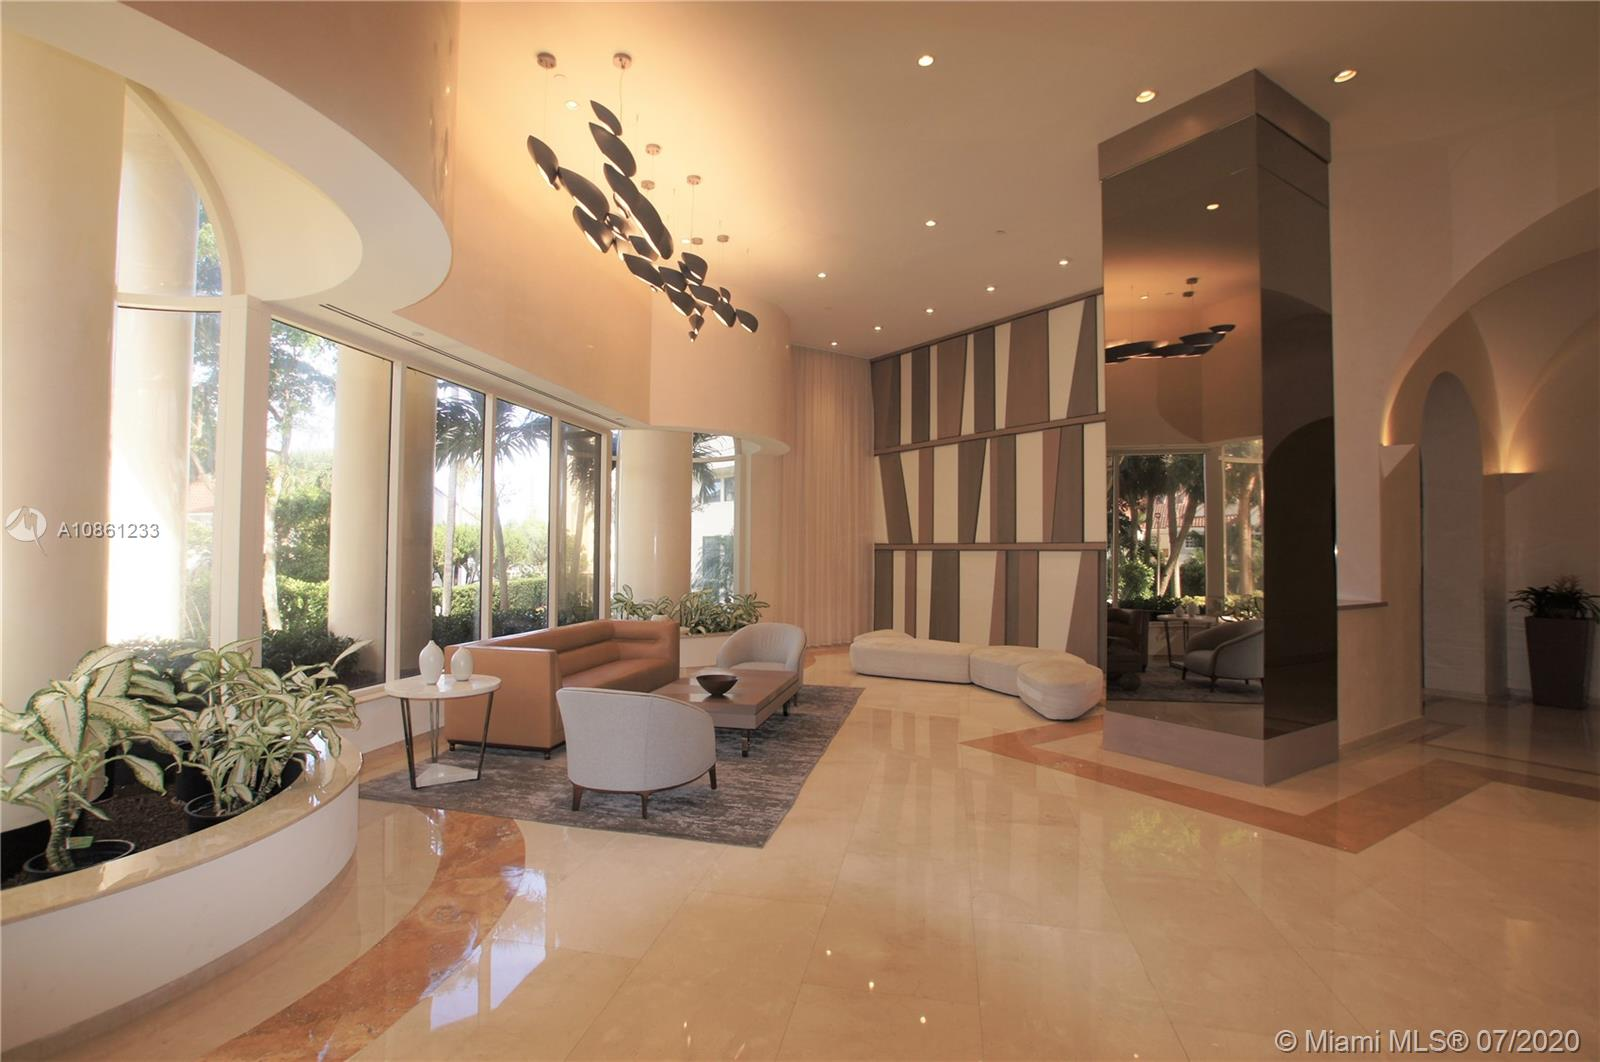 19355 Turnberry Way # 16F, Aventura, Florida 33180, 2 Bedrooms Bedrooms, 1 Room Rooms,2 BathroomsBathrooms,Residential,For Sale,19355 Turnberry Way # 16F,A10861233